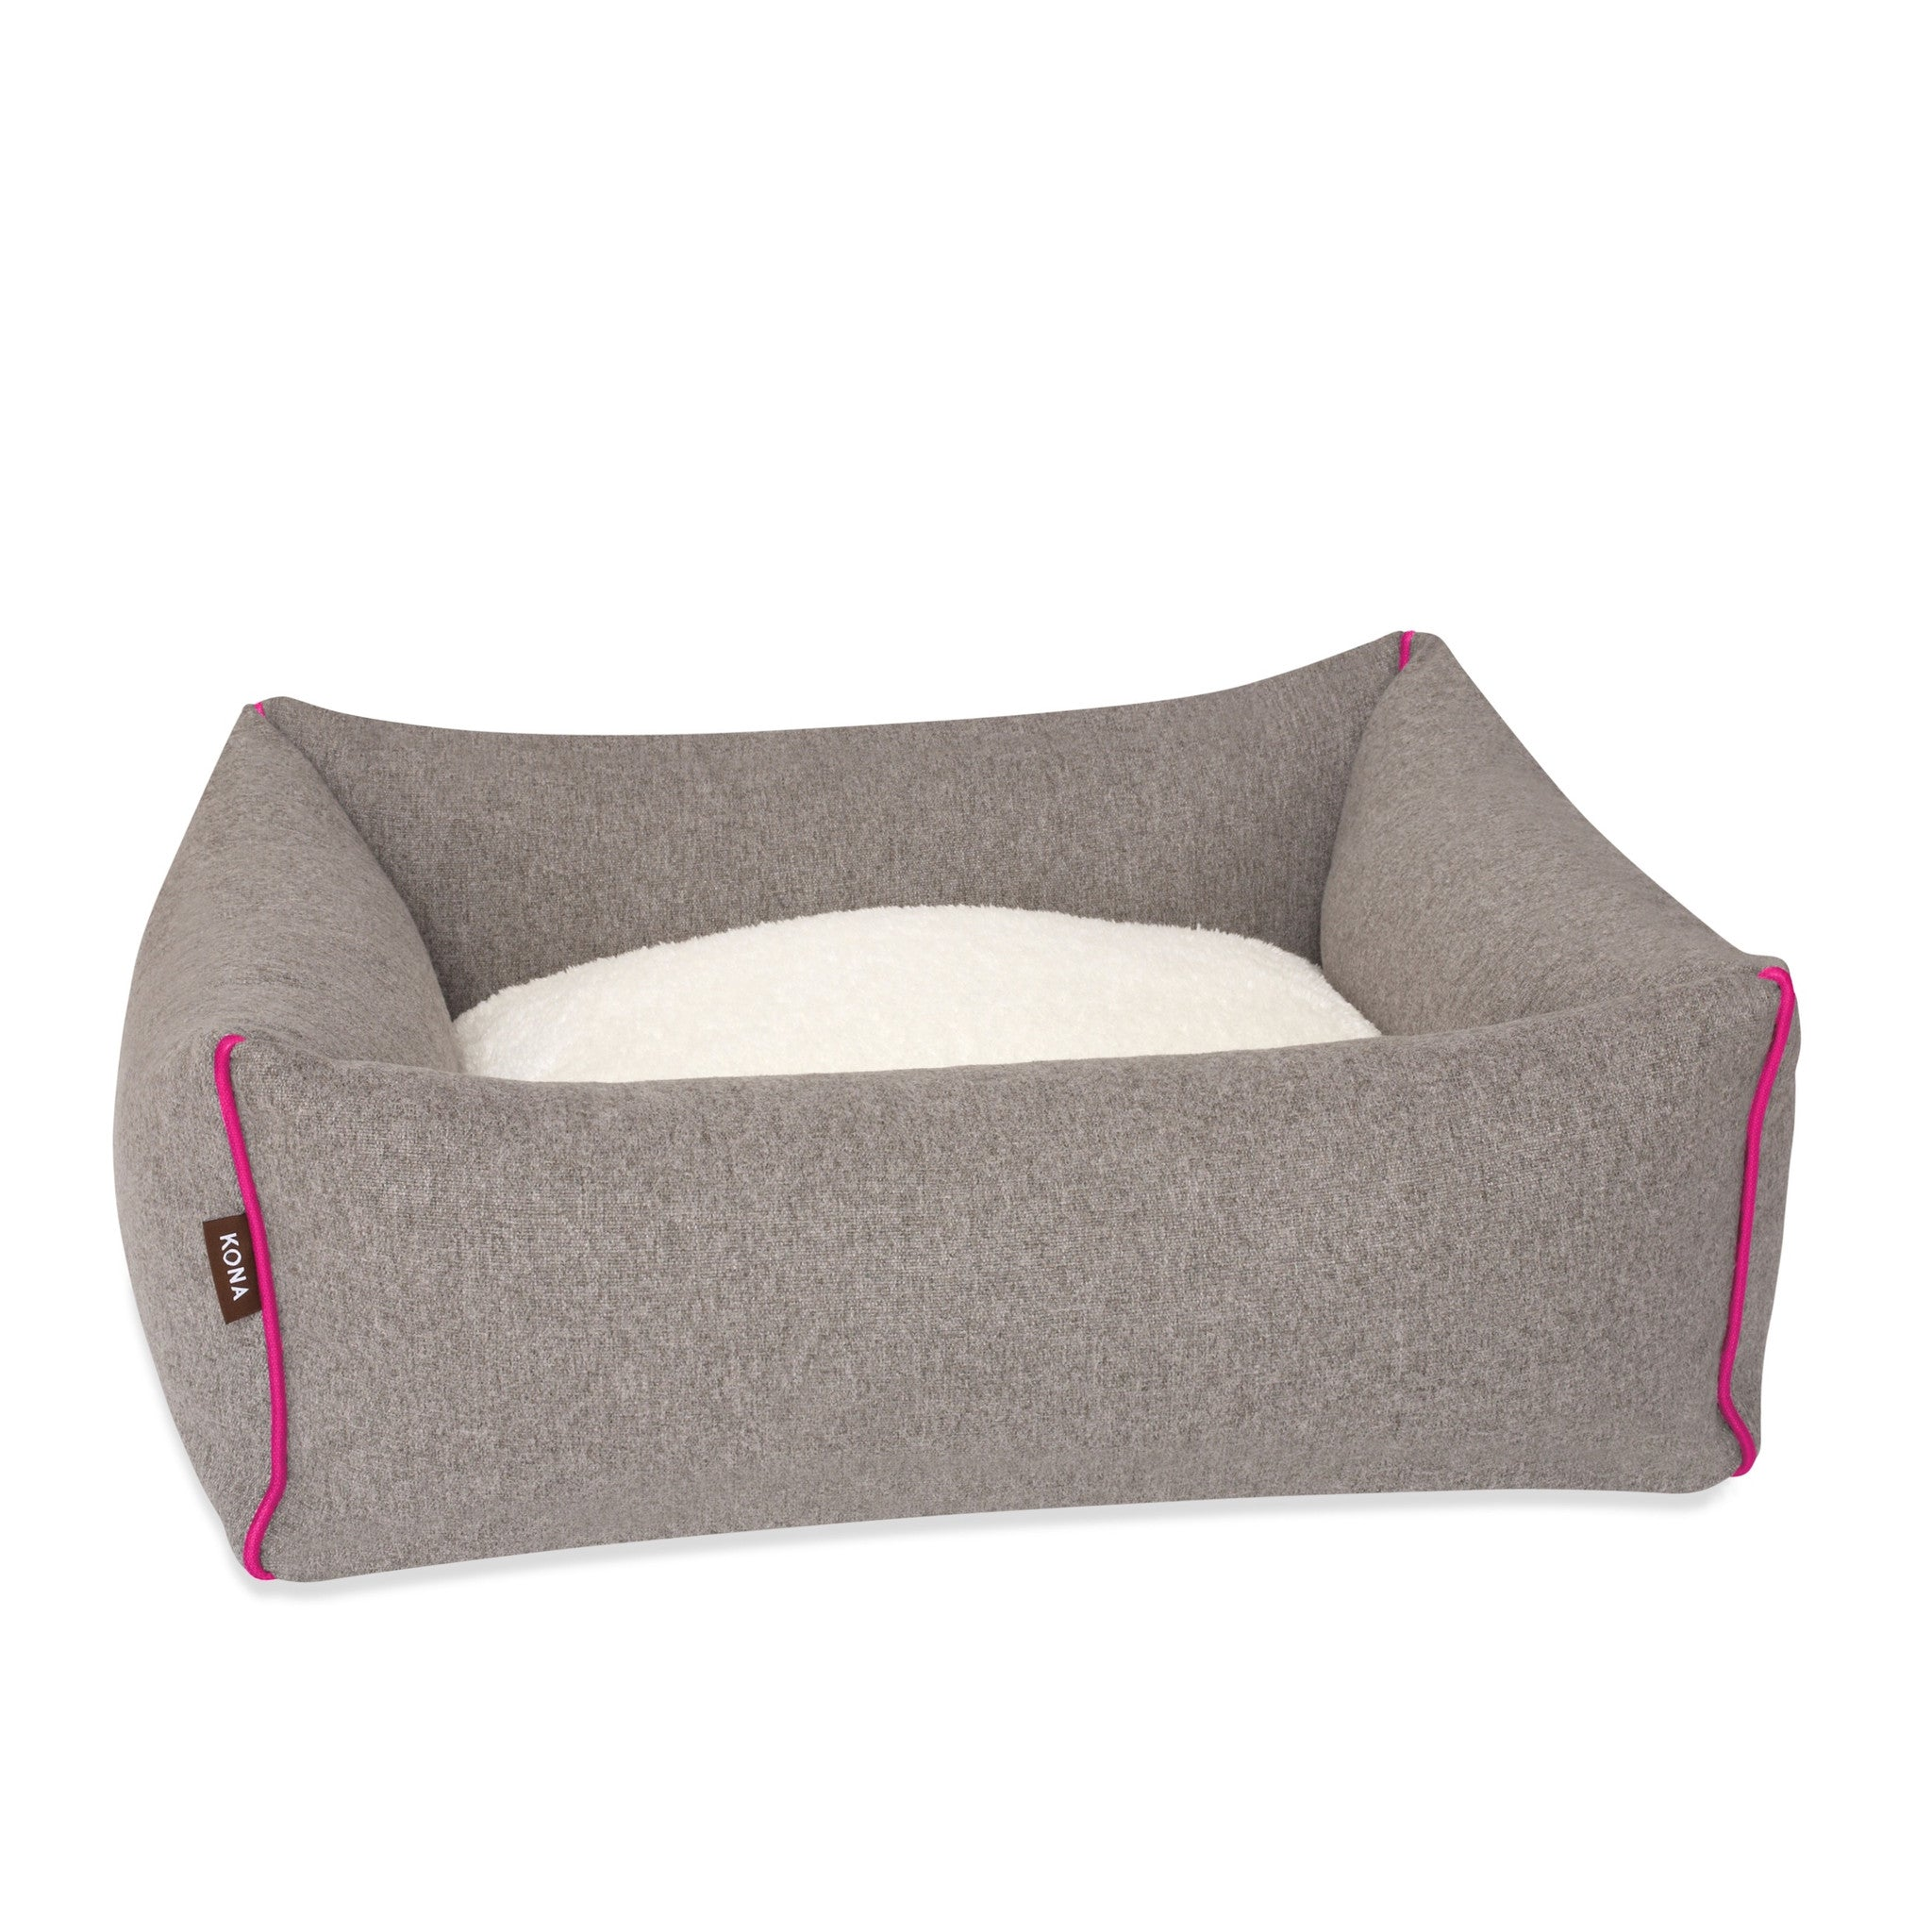 on by beds dog luxury pin hampton uk handmade fabulous bed the company in